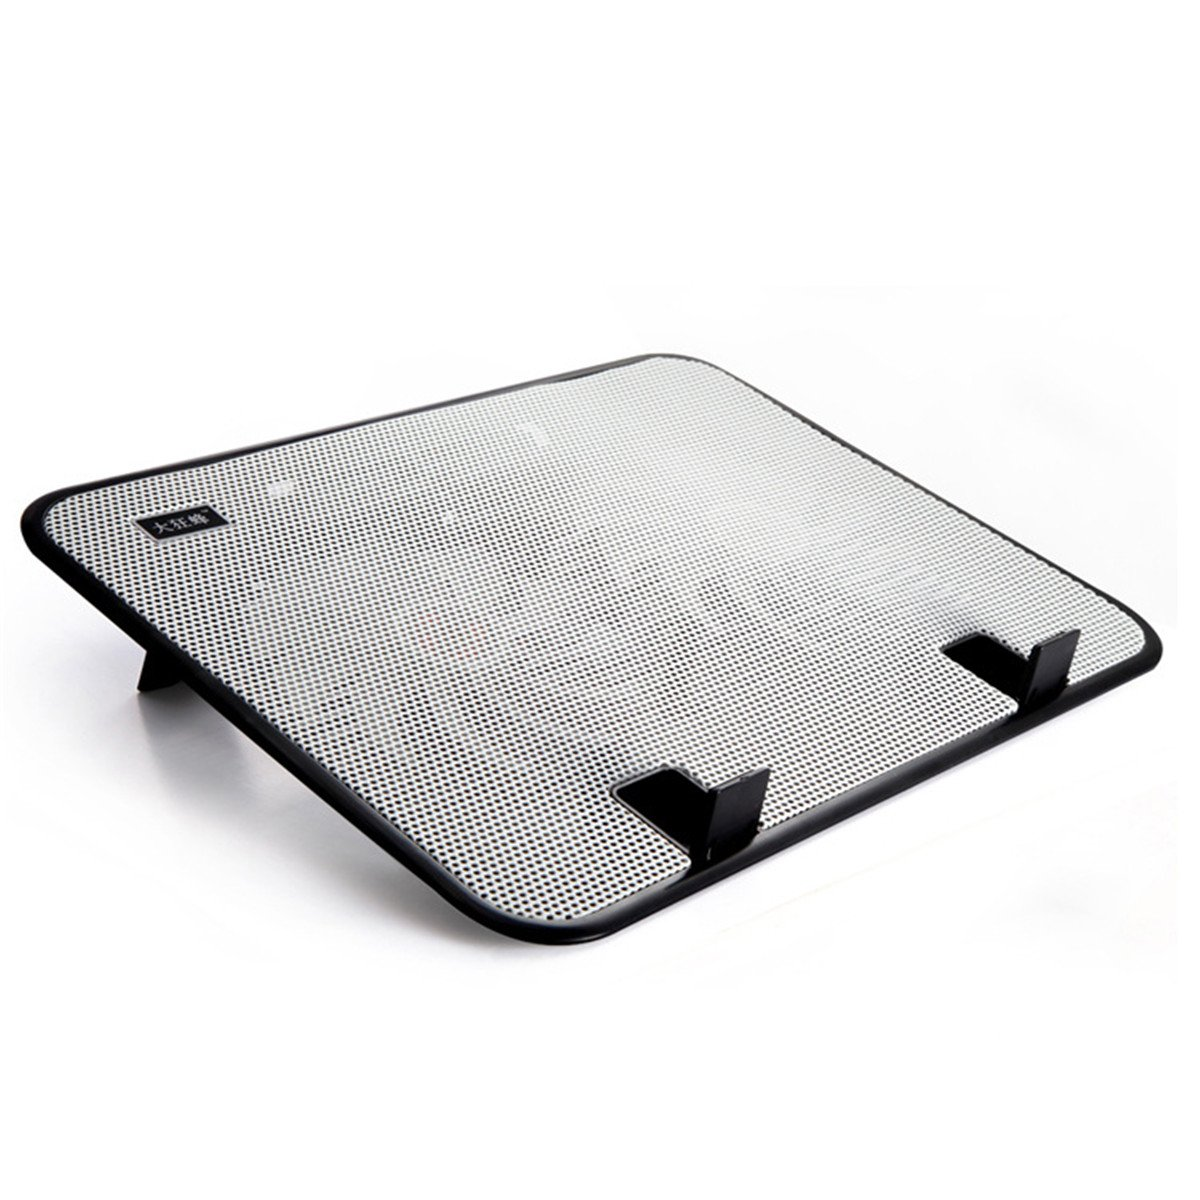 Laptop Cooler, Metal Mesh Surface 2 Quiet Fans 1 USB Ports Lap Desk Air Cooling Pad, Mat for 12'' 13'' 14'' inch (White) by CHRISTYZHANG (Image #1)